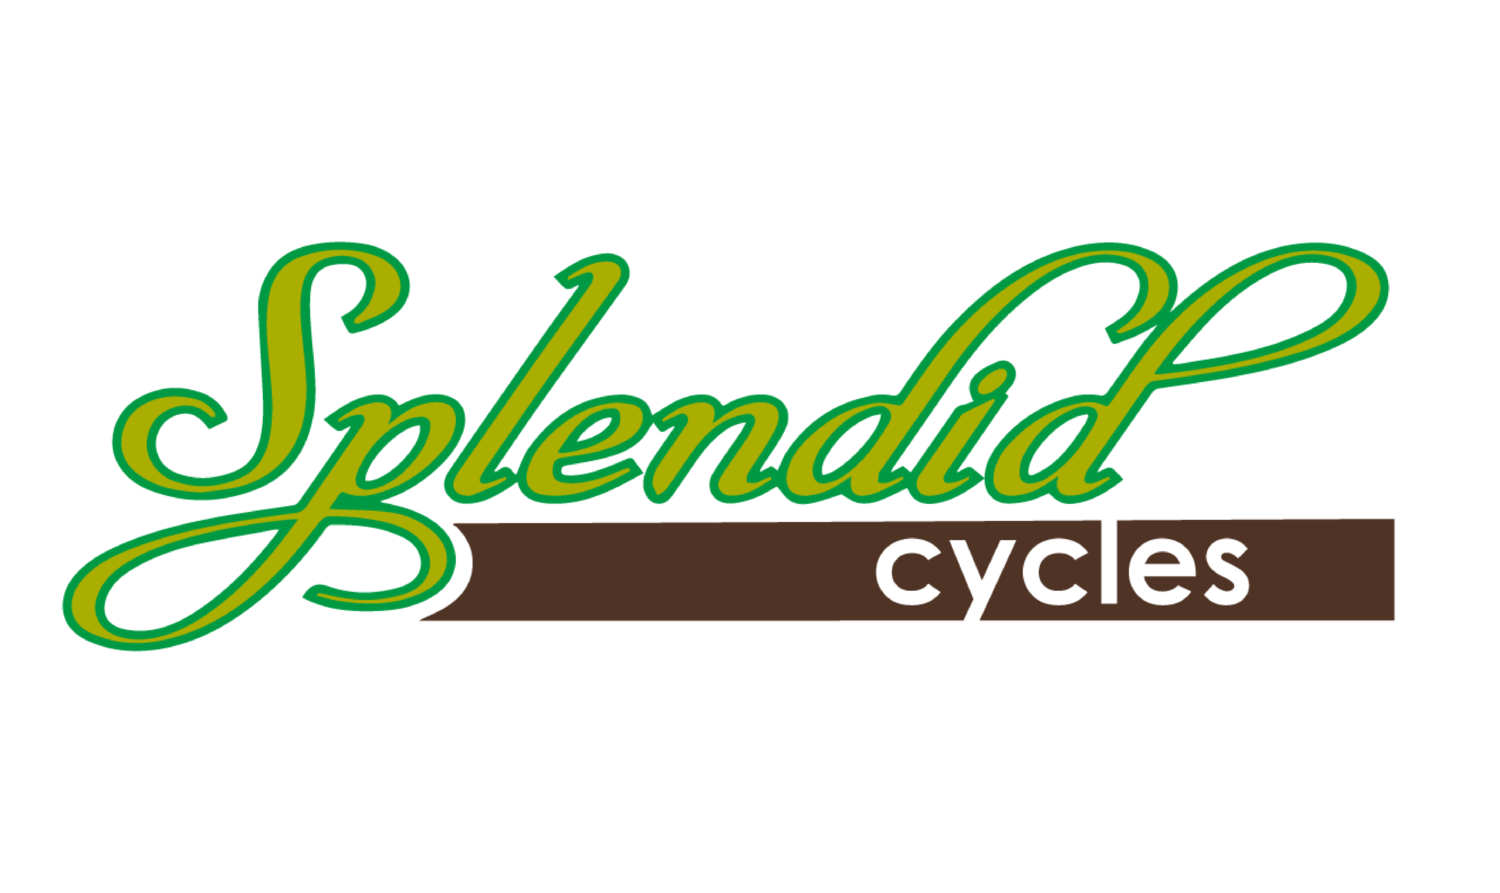 Splendid Cycles